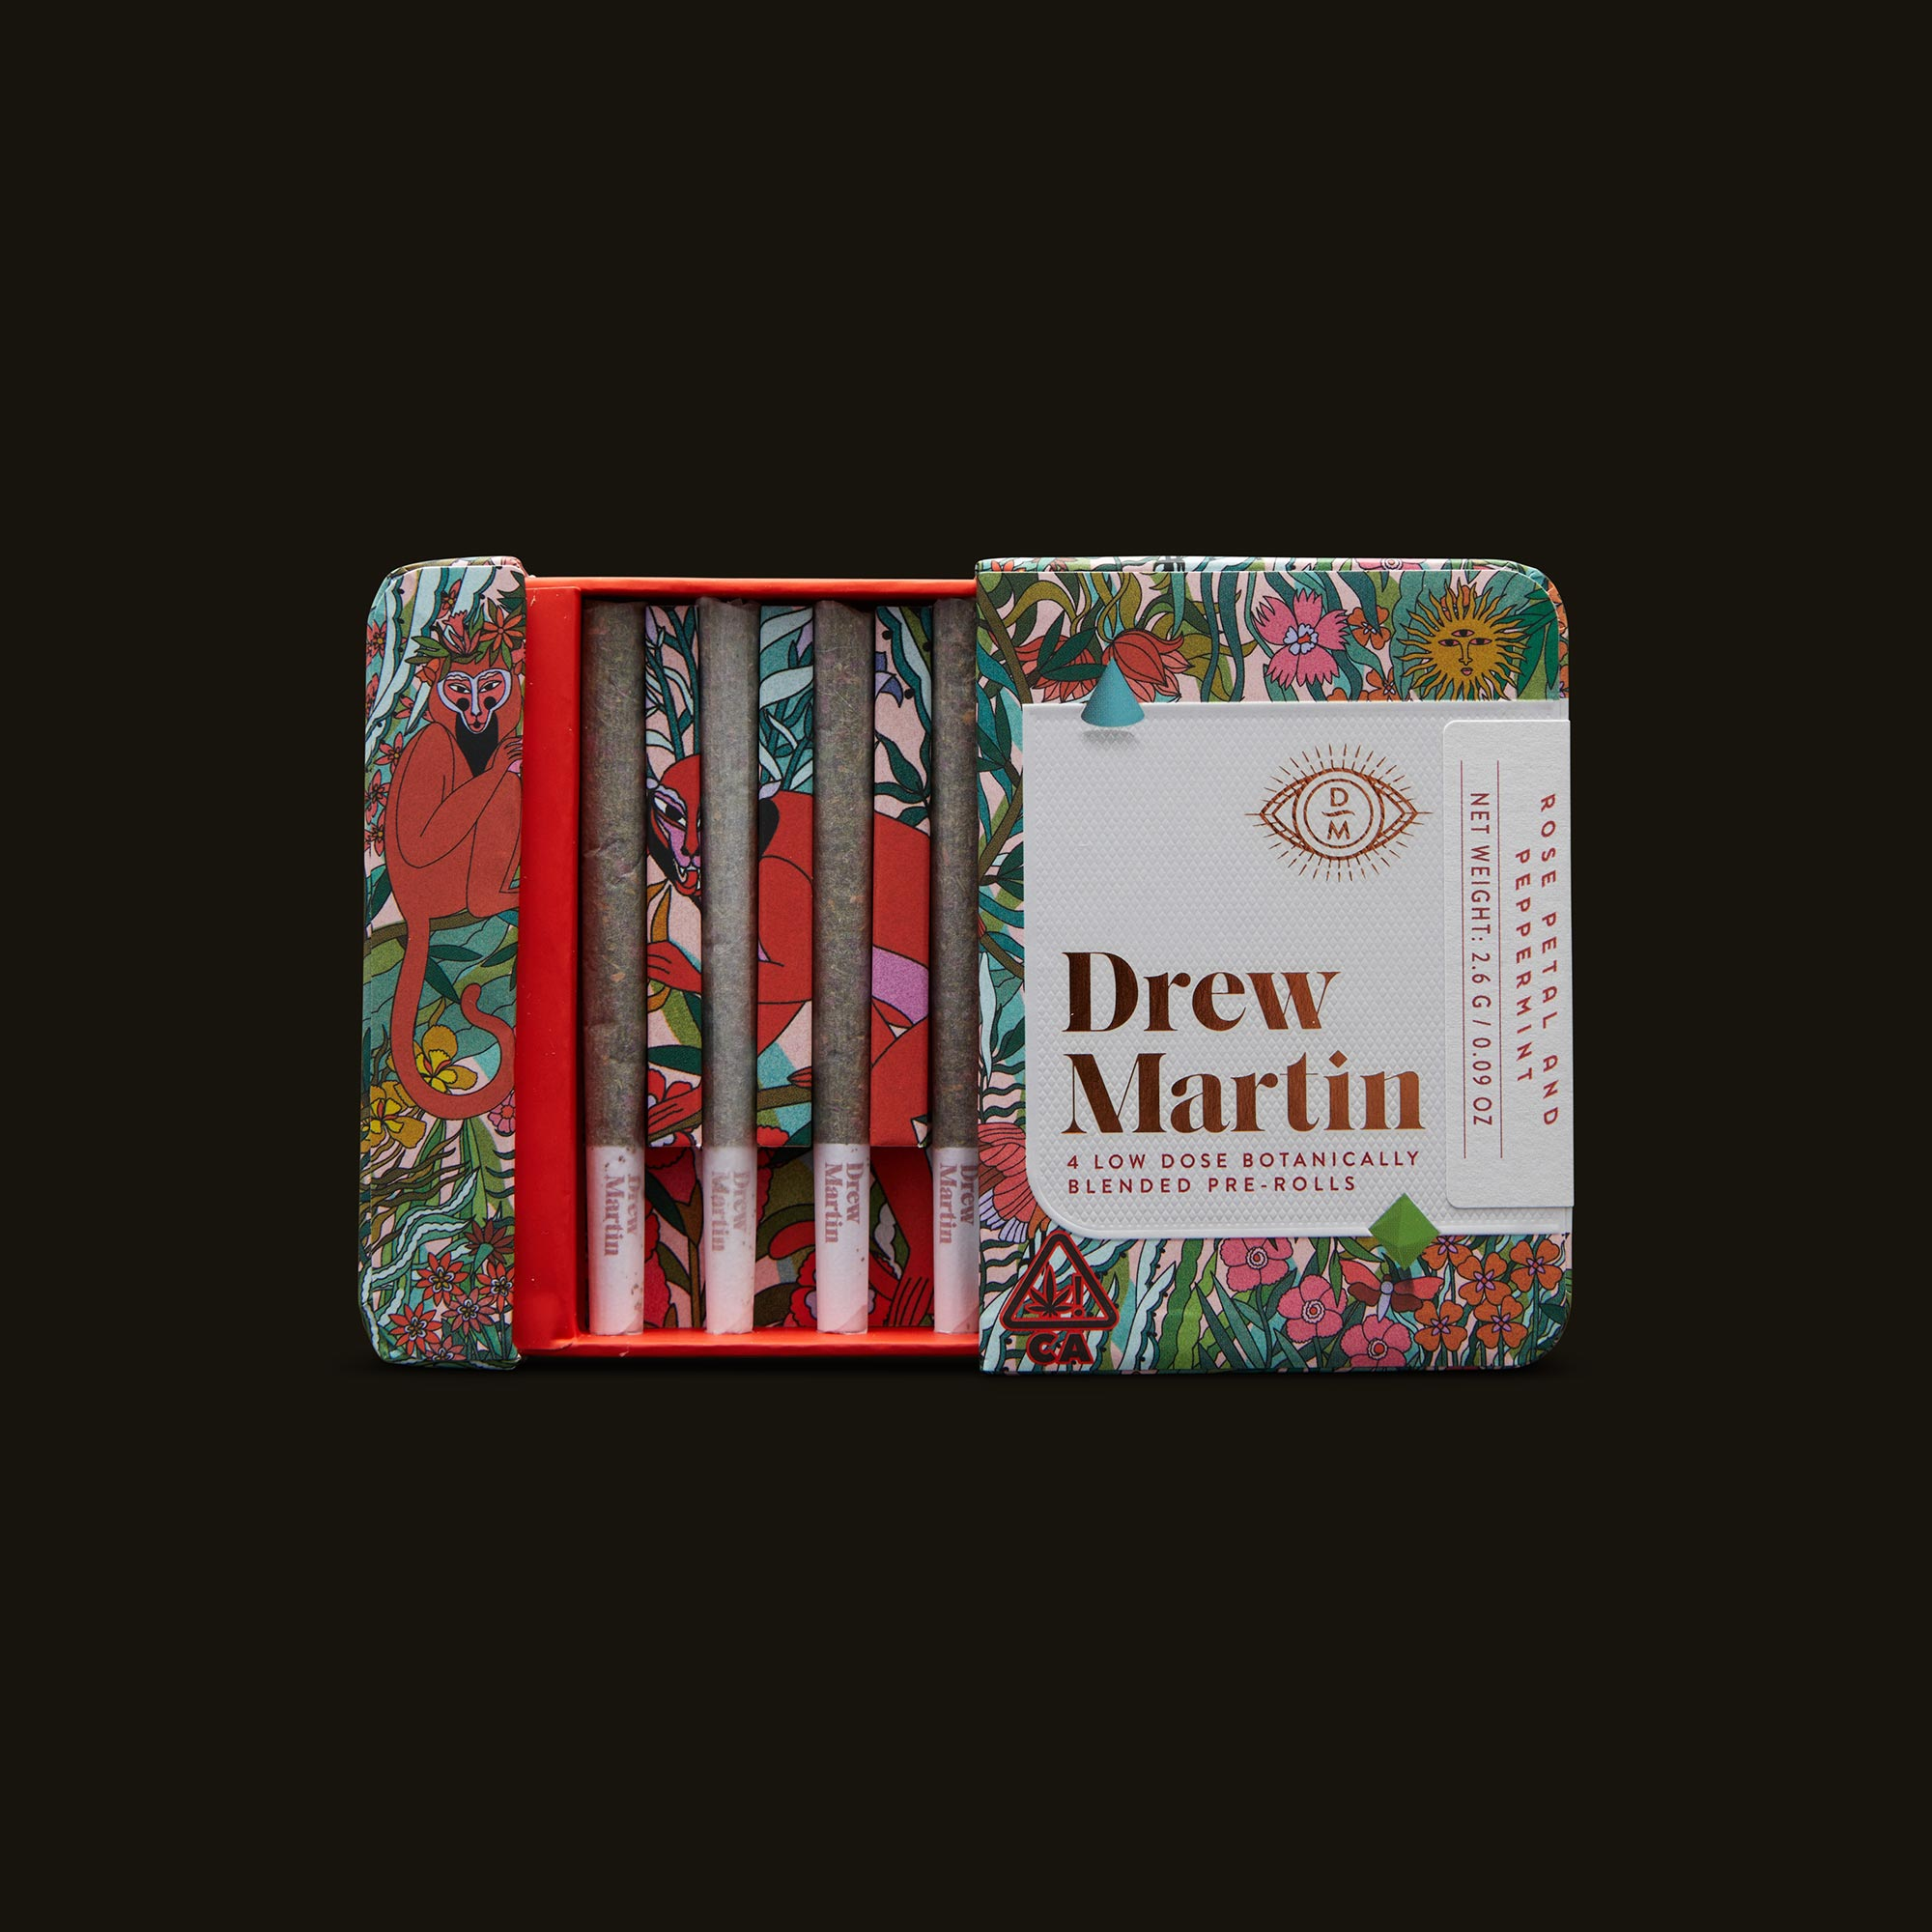 Drew Martin Rose Petal and Peppermint Pre-Rolls Open Packaging